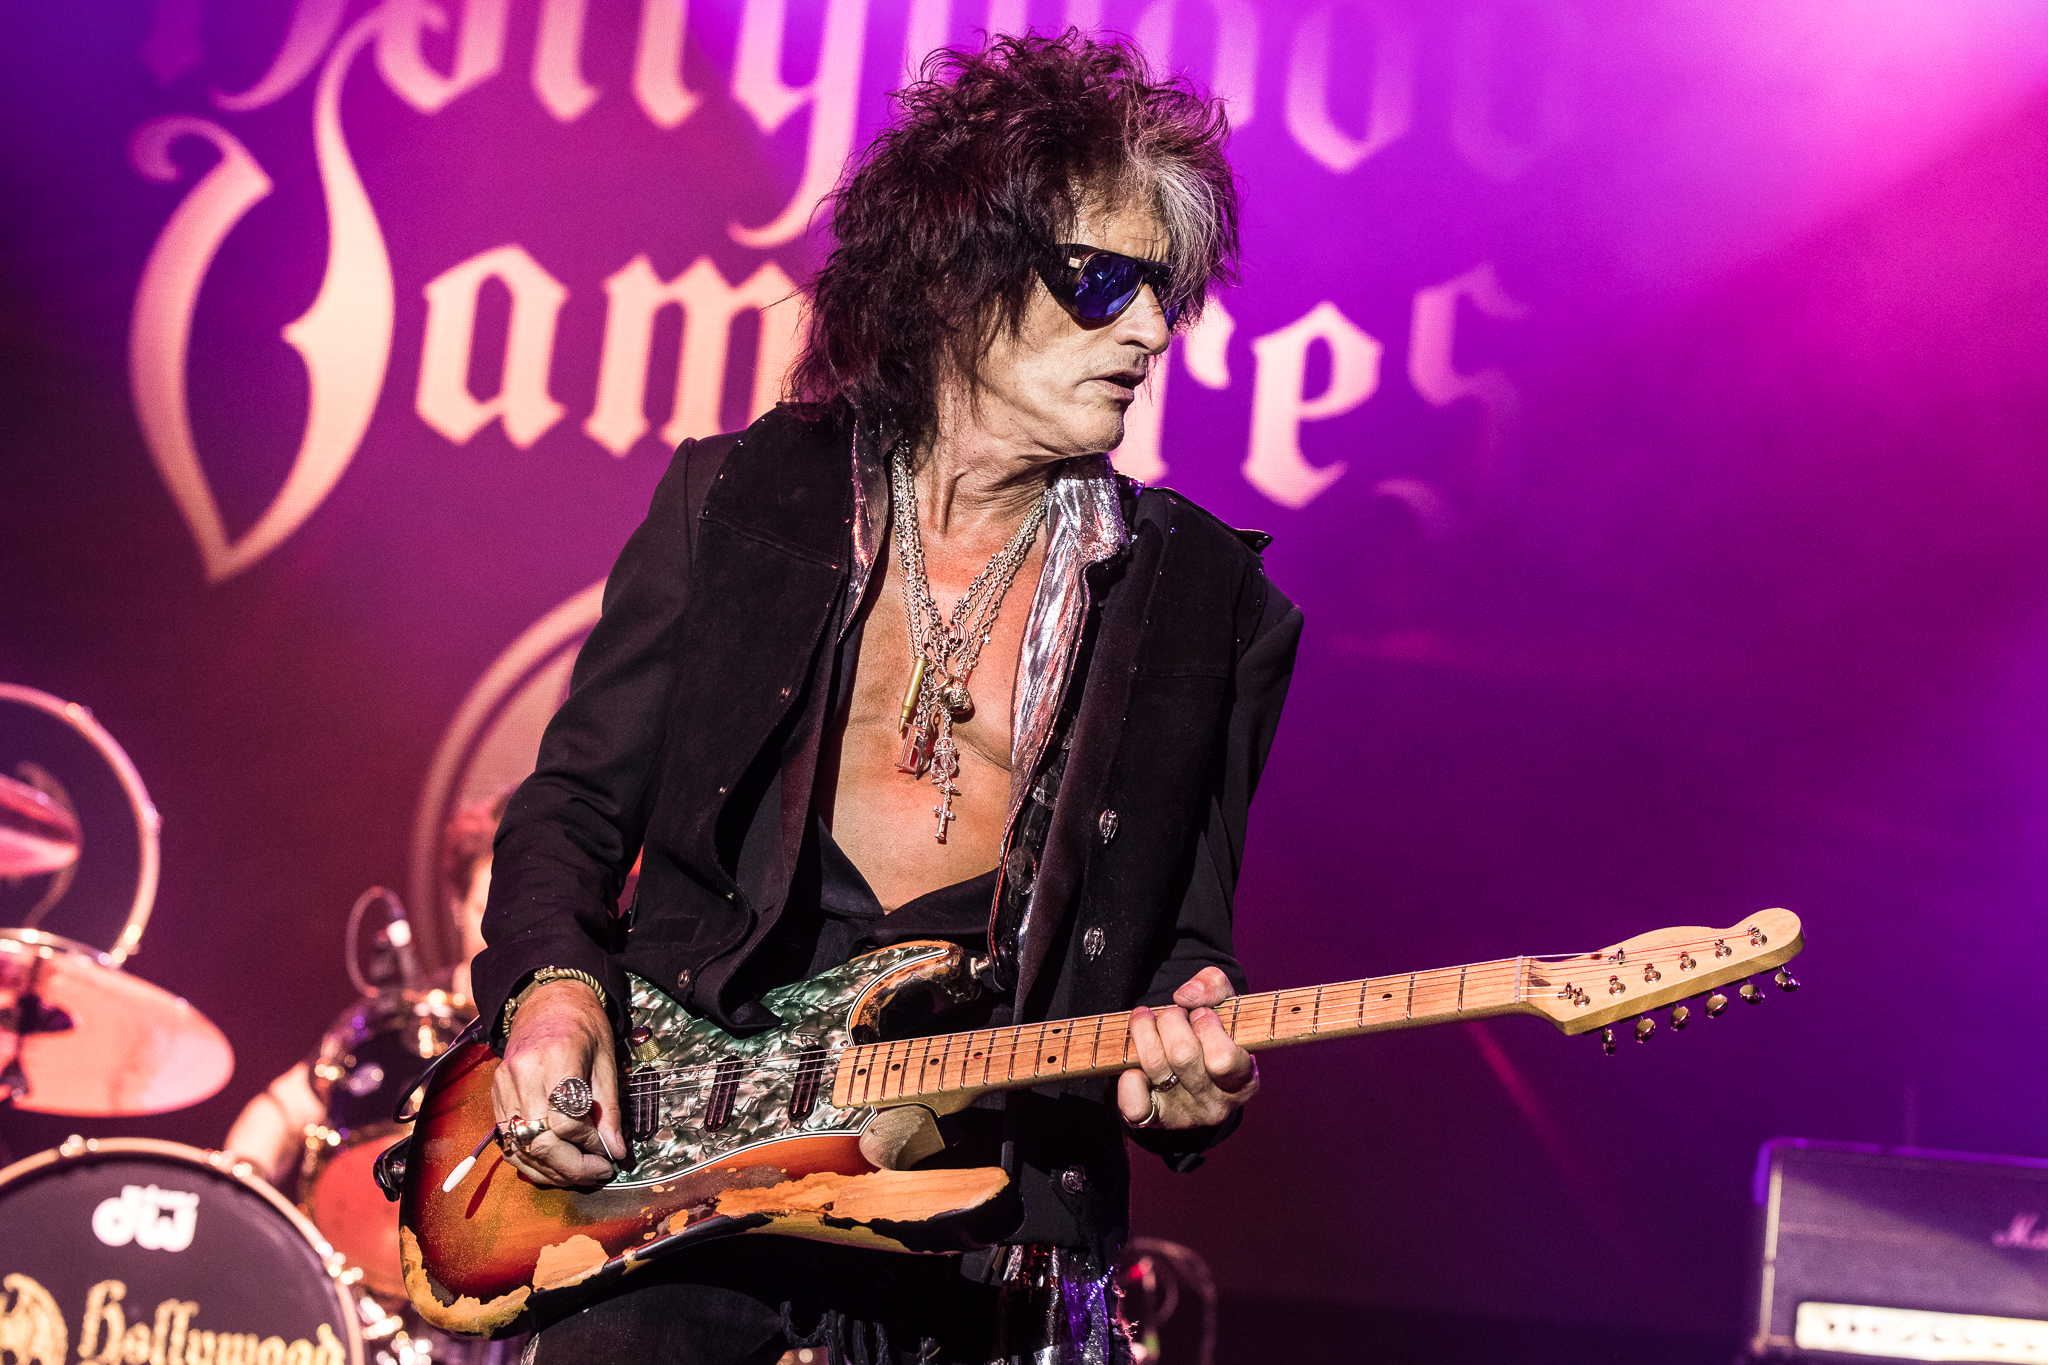 Joe Perry // Aerosmith